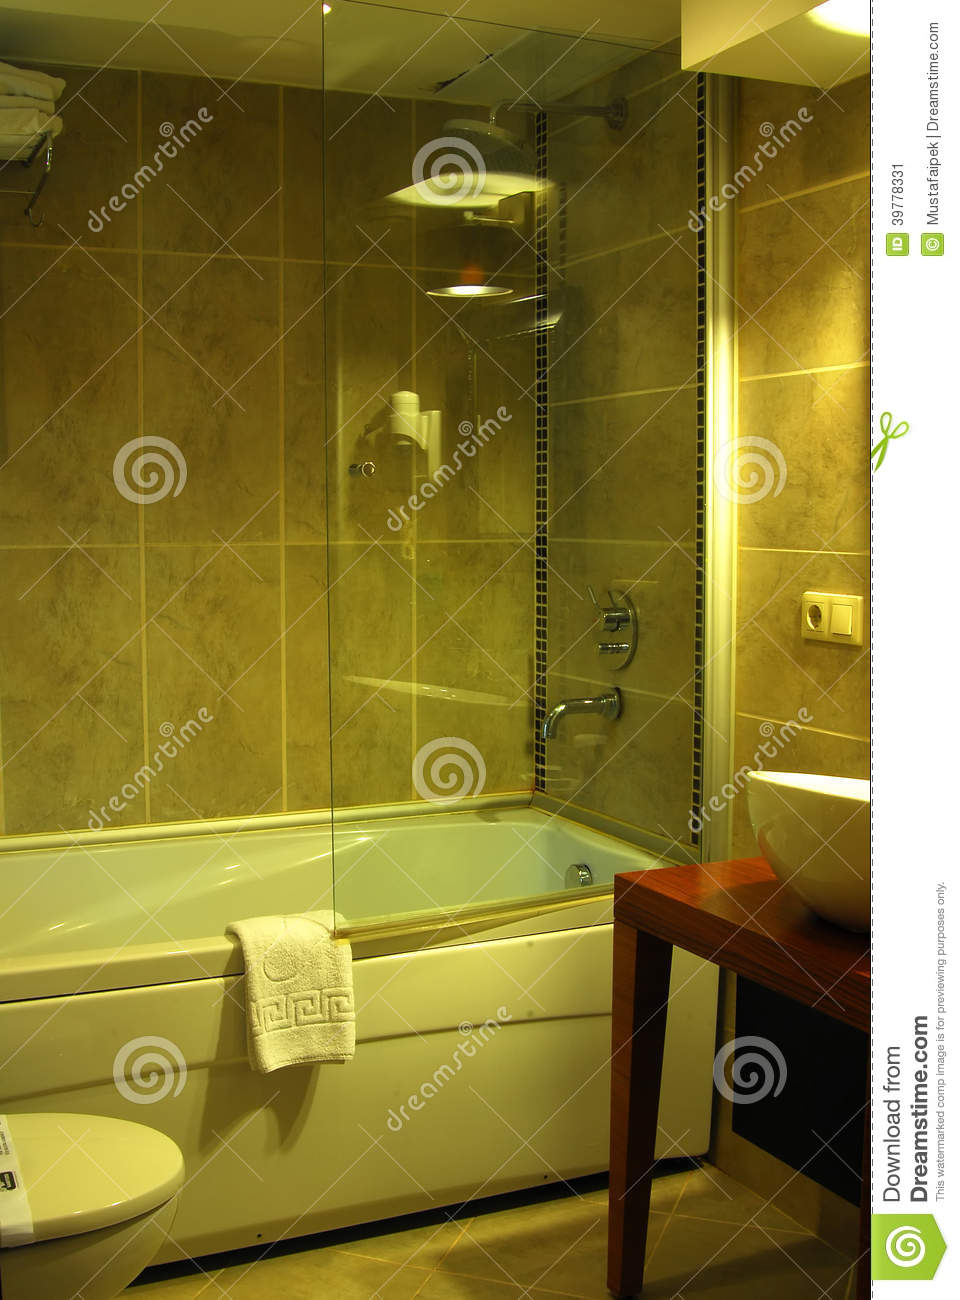 Bathroom interior of brand new luxury resort hotel royalty for Latest bathroom interior